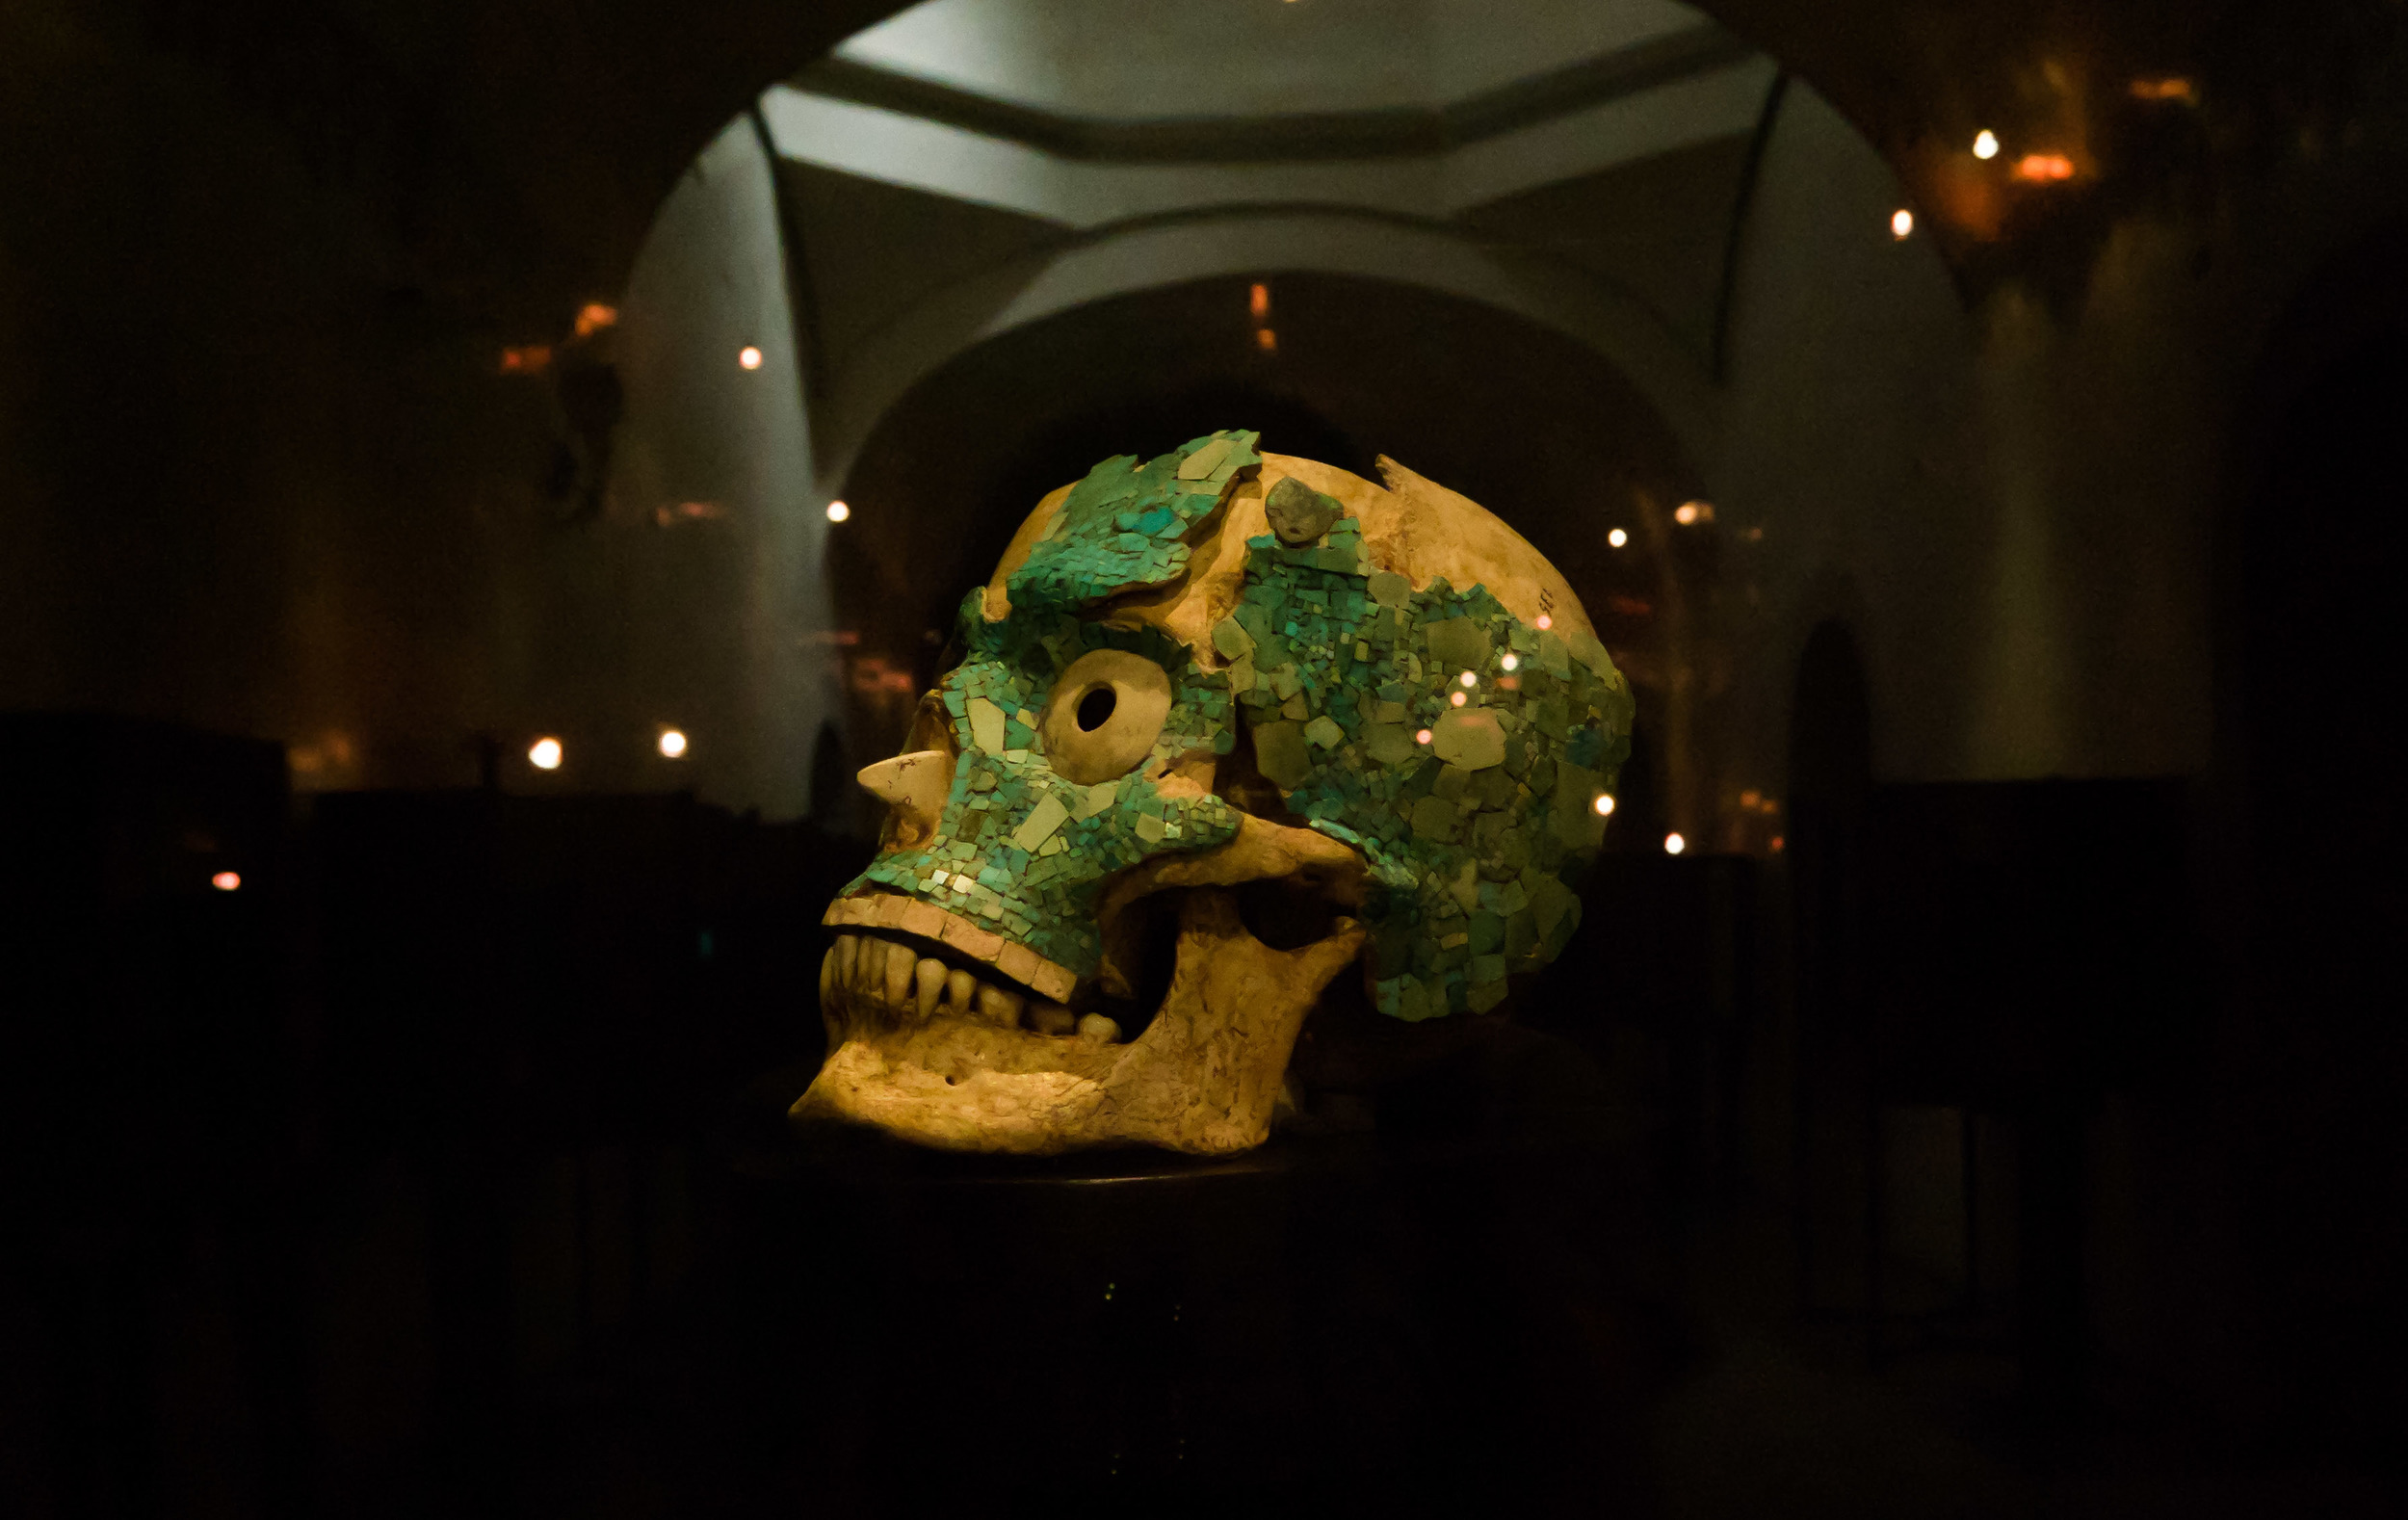 Decorated skull founded in tomb 7.